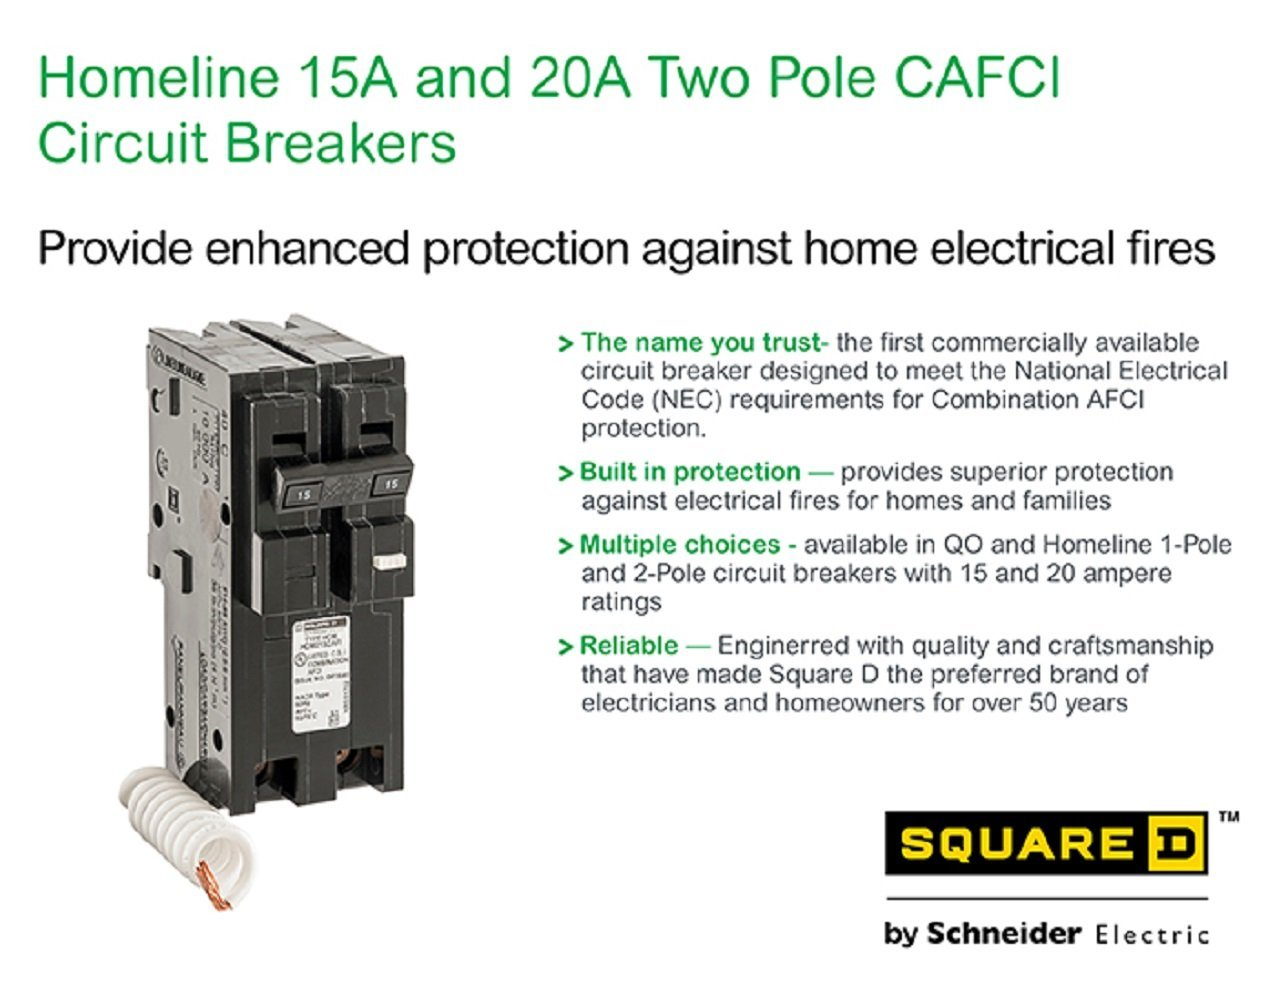 Square D By Schneider Electric Hom220cafic Homeline 20 Amp Two Pole Bined Arc Fault Circuit Interrupter And On Gfci Wiring With Cafci Breaker